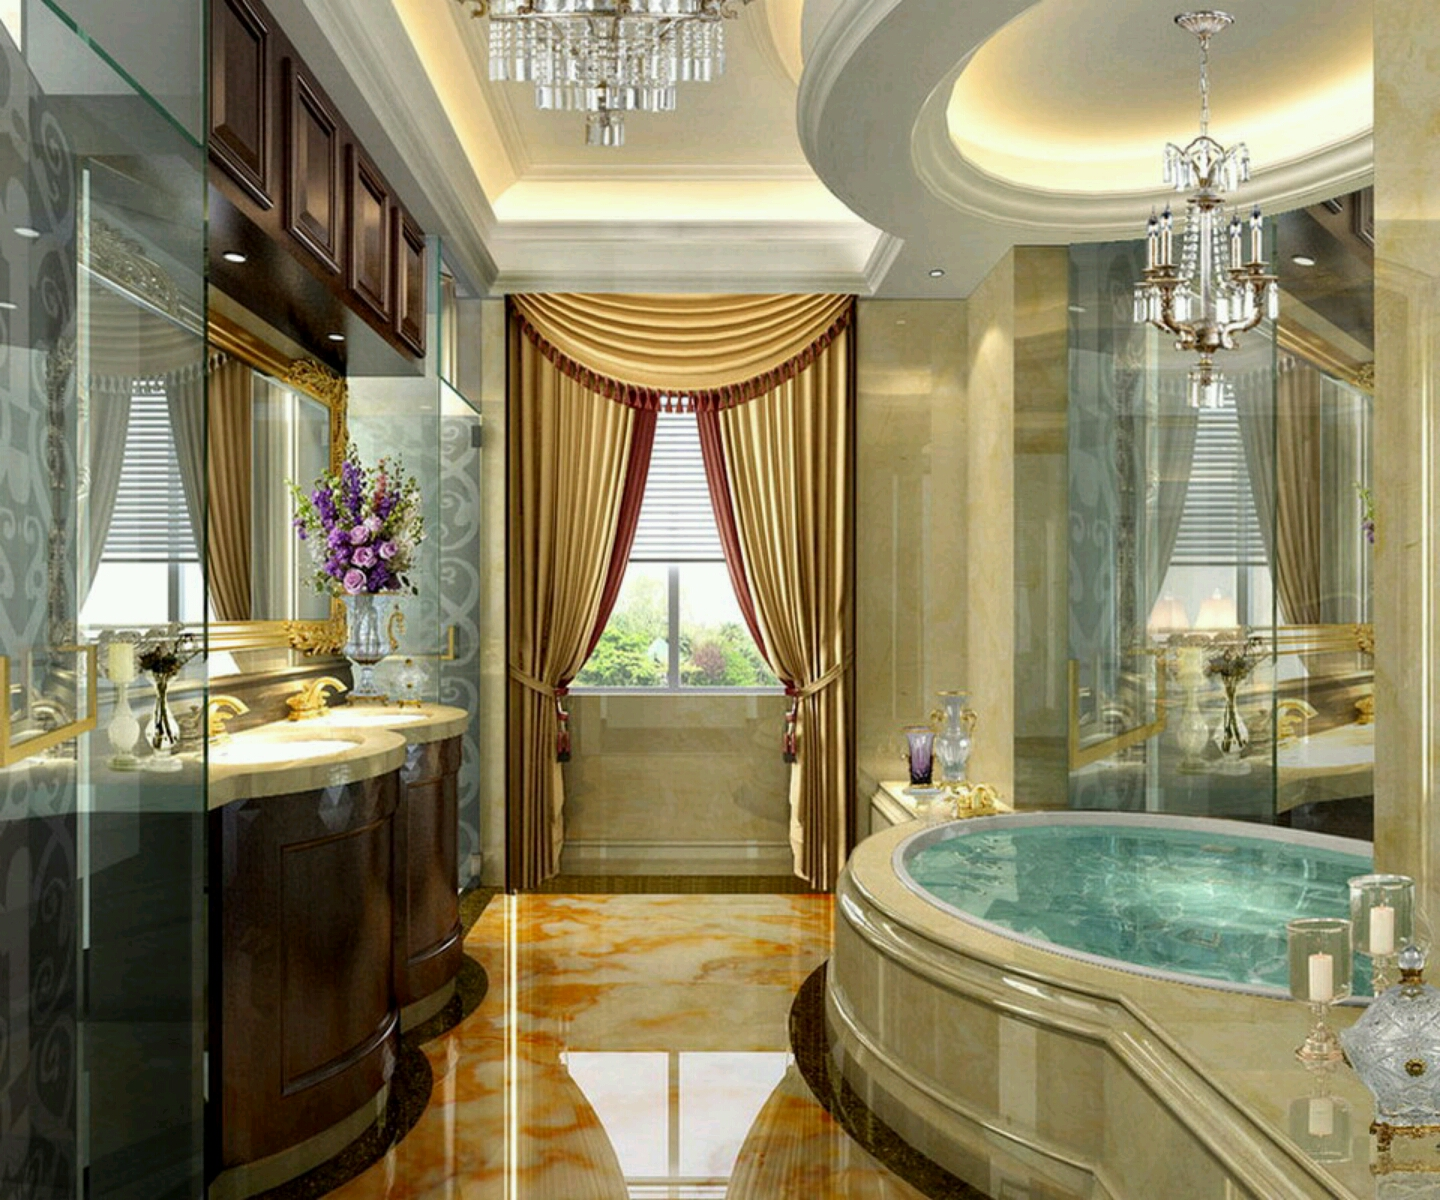 Luxury modern bathrooms designs decoration ideas. (1)